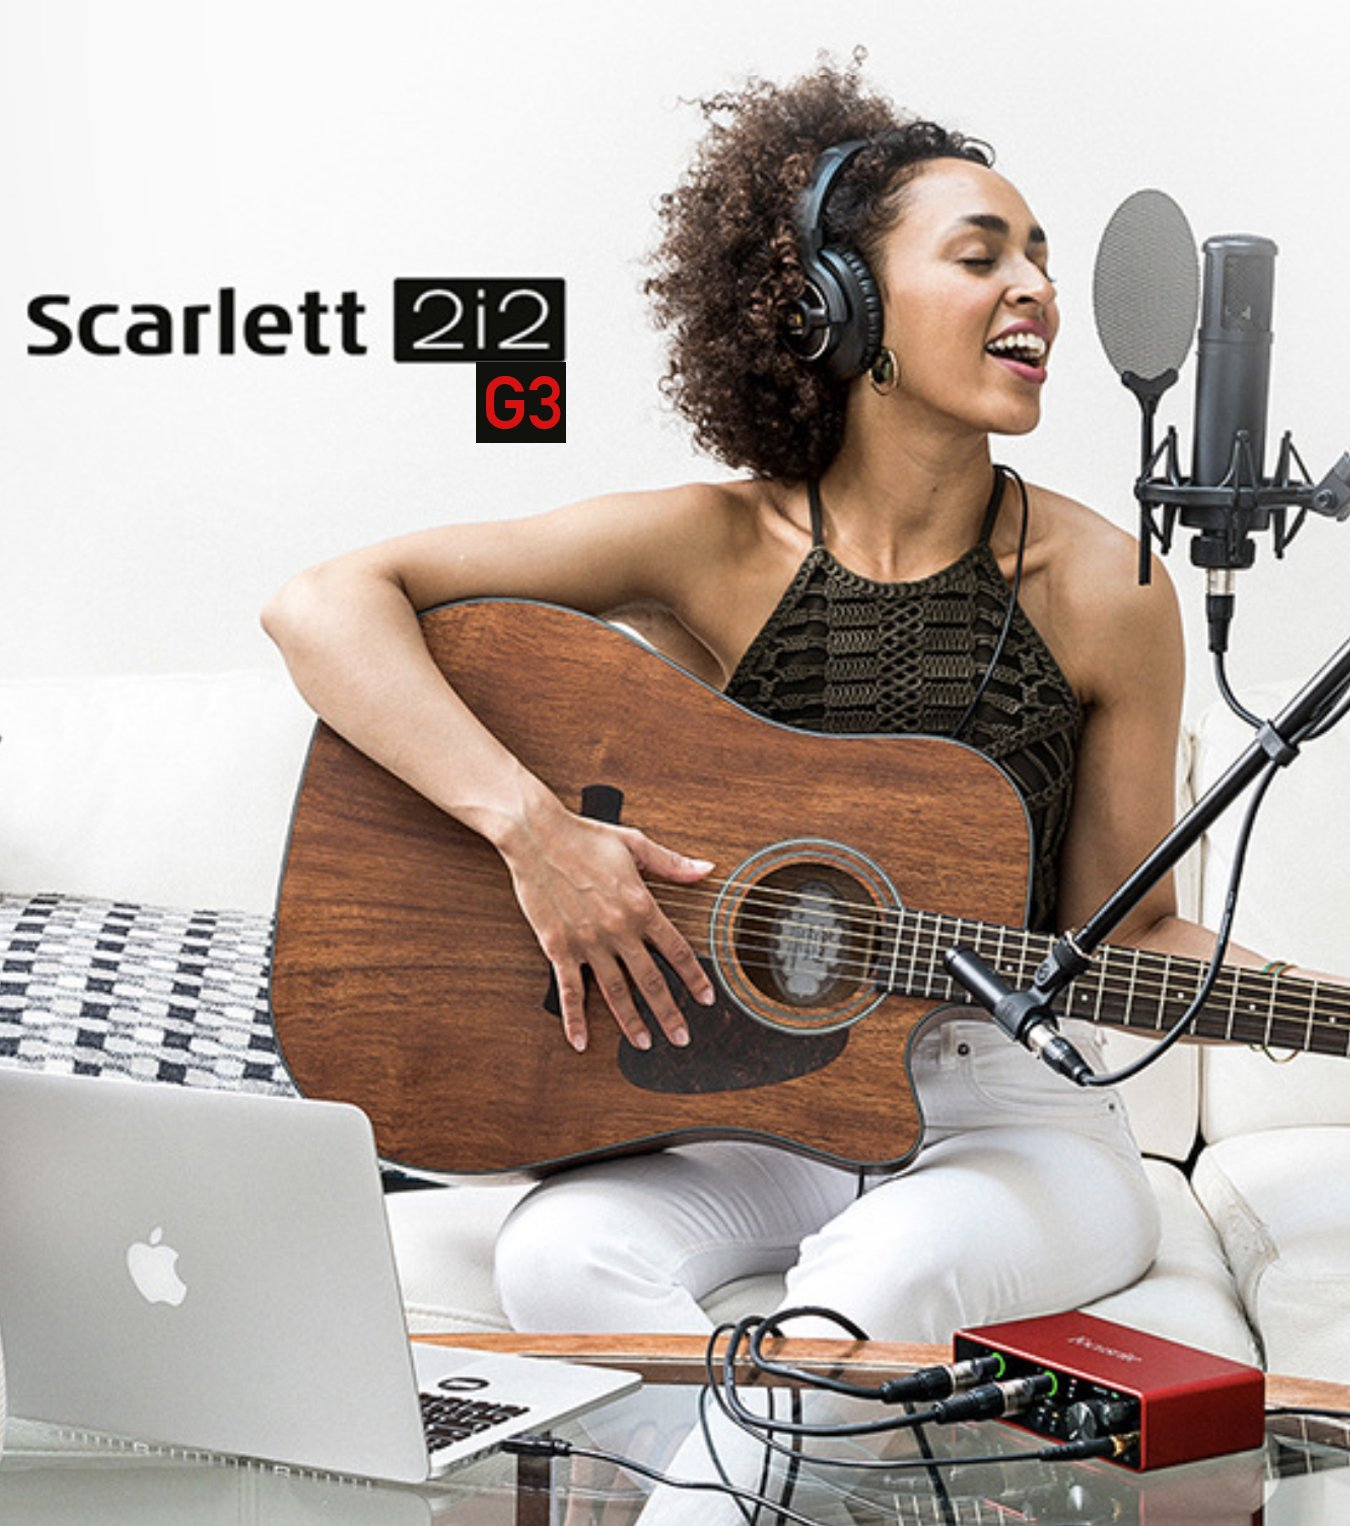 Soundcard Focusrite Scarlett 2i2 3rd (Gen) - Interface thu âm studio 2 Mic